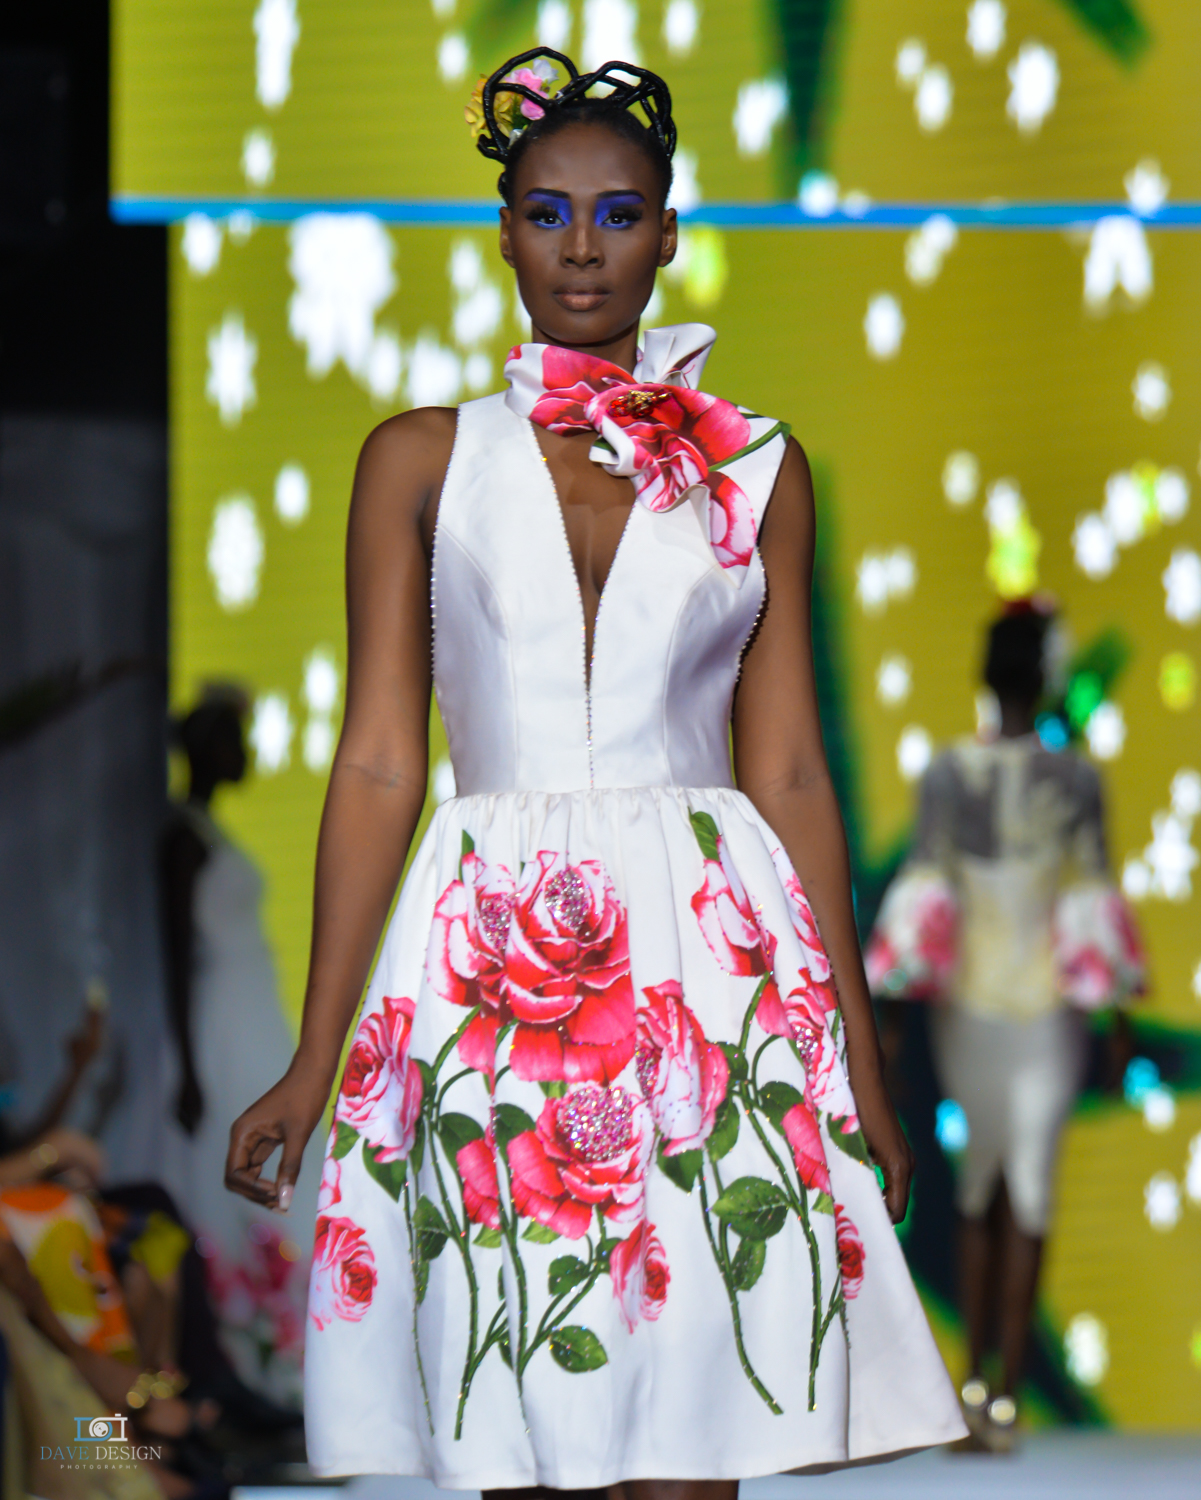 Lahad Guèye à la Dakar Fashion Week 2018